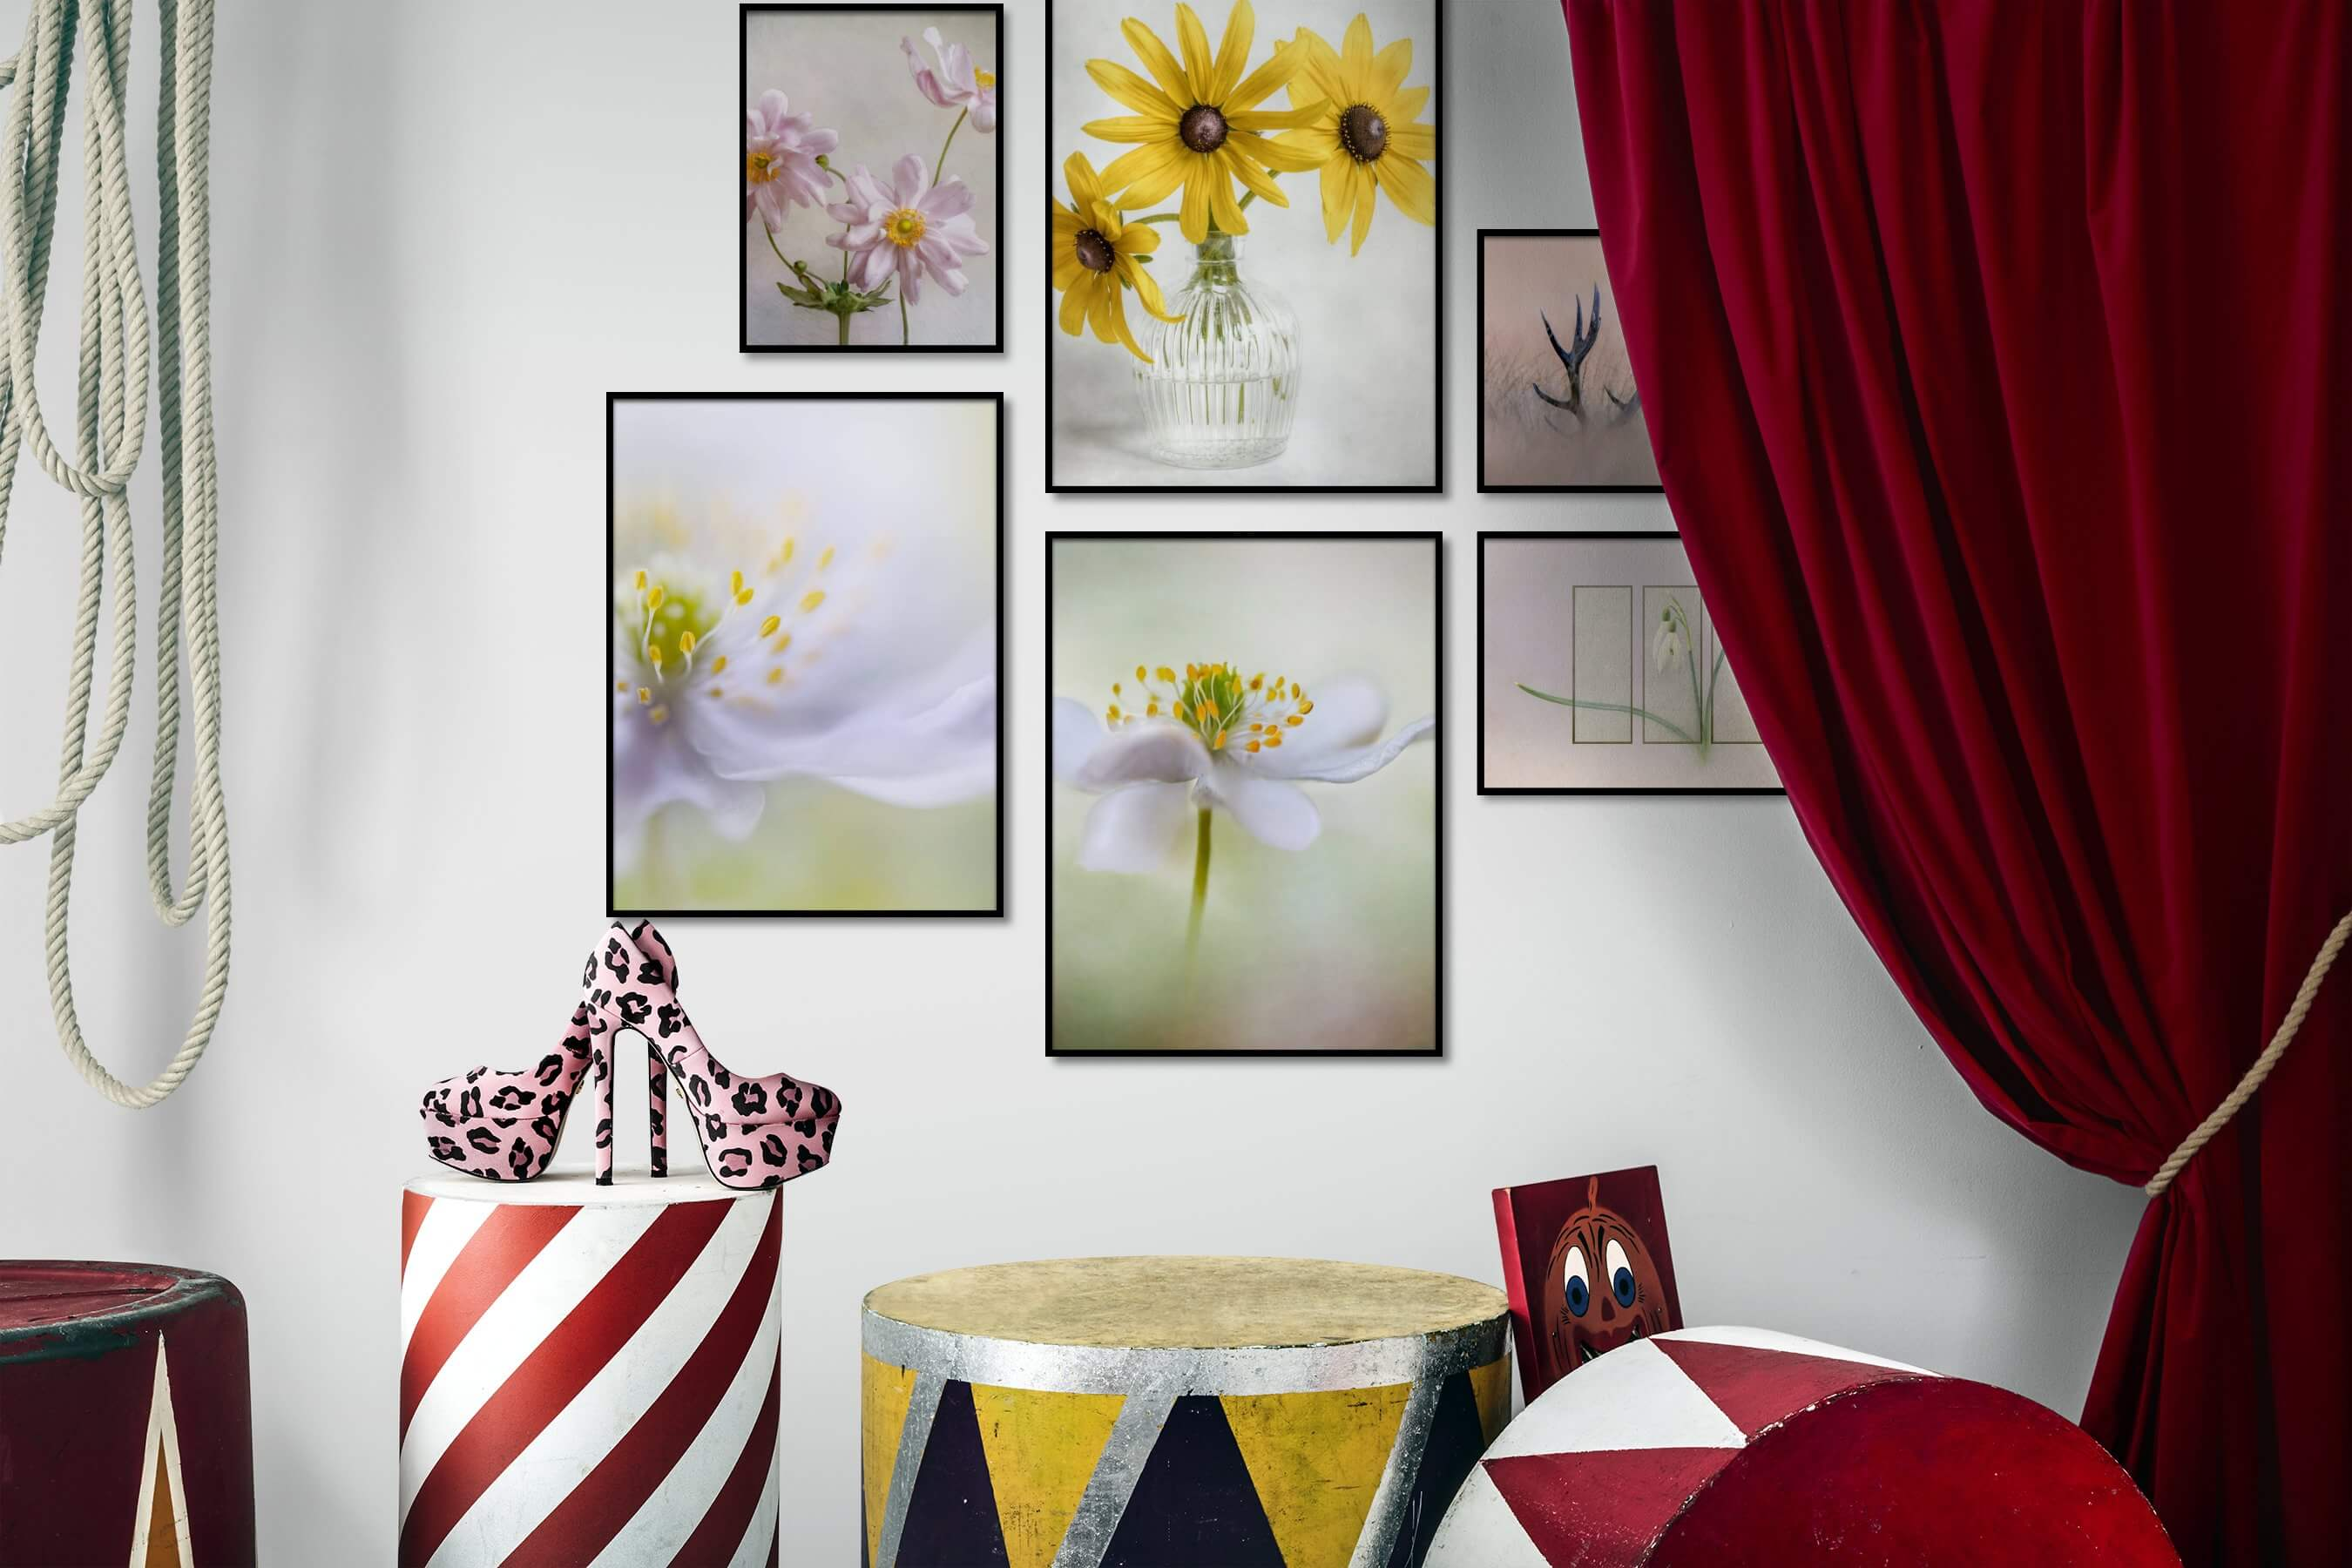 Gallery wall idea with six framed pictures arranged on a wall depicting Flowers & Plants, For the Minimalist, Nature, Animals, and Mindfulness